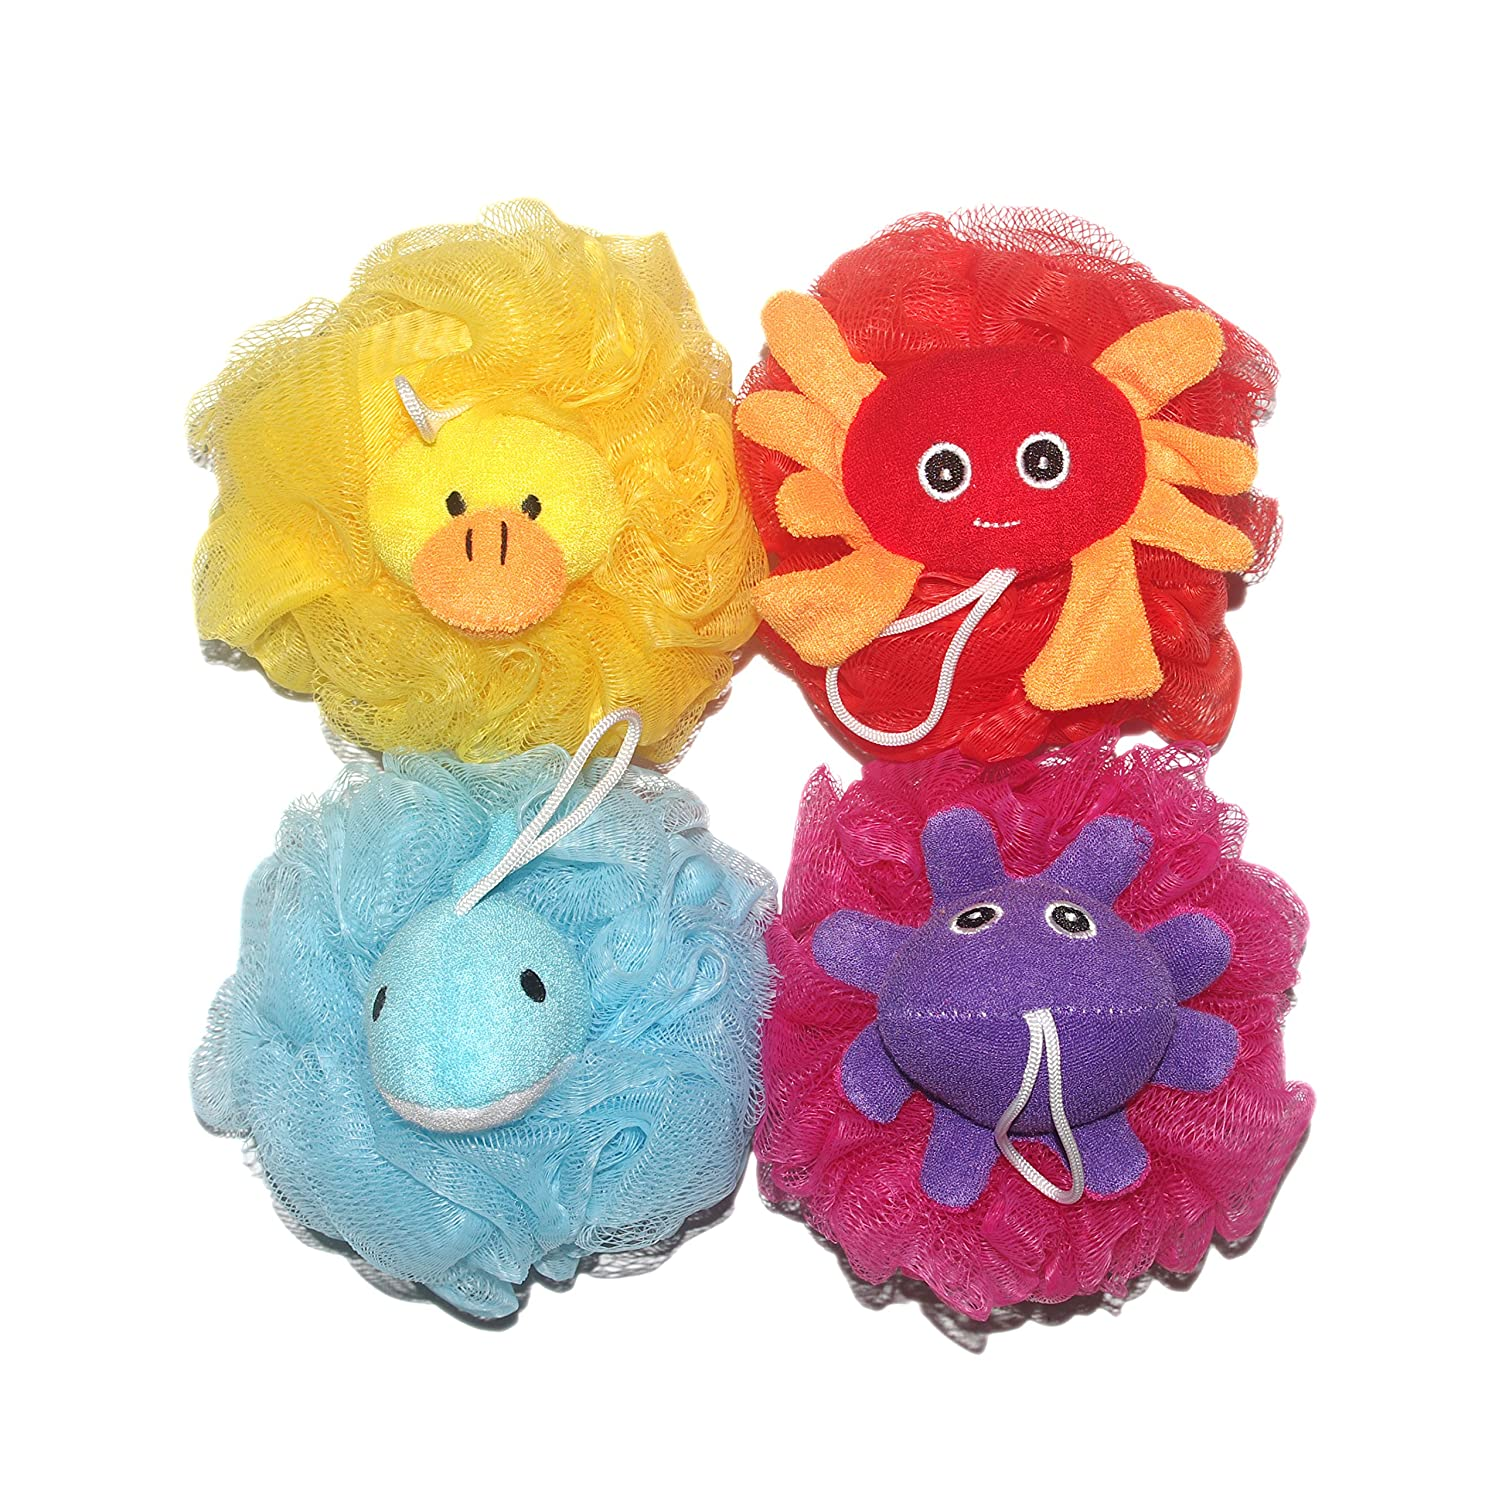 4Pcs/Set Stuffed Animal Bath and Shower Mesh Pouf (Around 5-inch Loofah with 65 Gram Each) for Kids Childs Baby Toy TTYBG BB-AN-1S